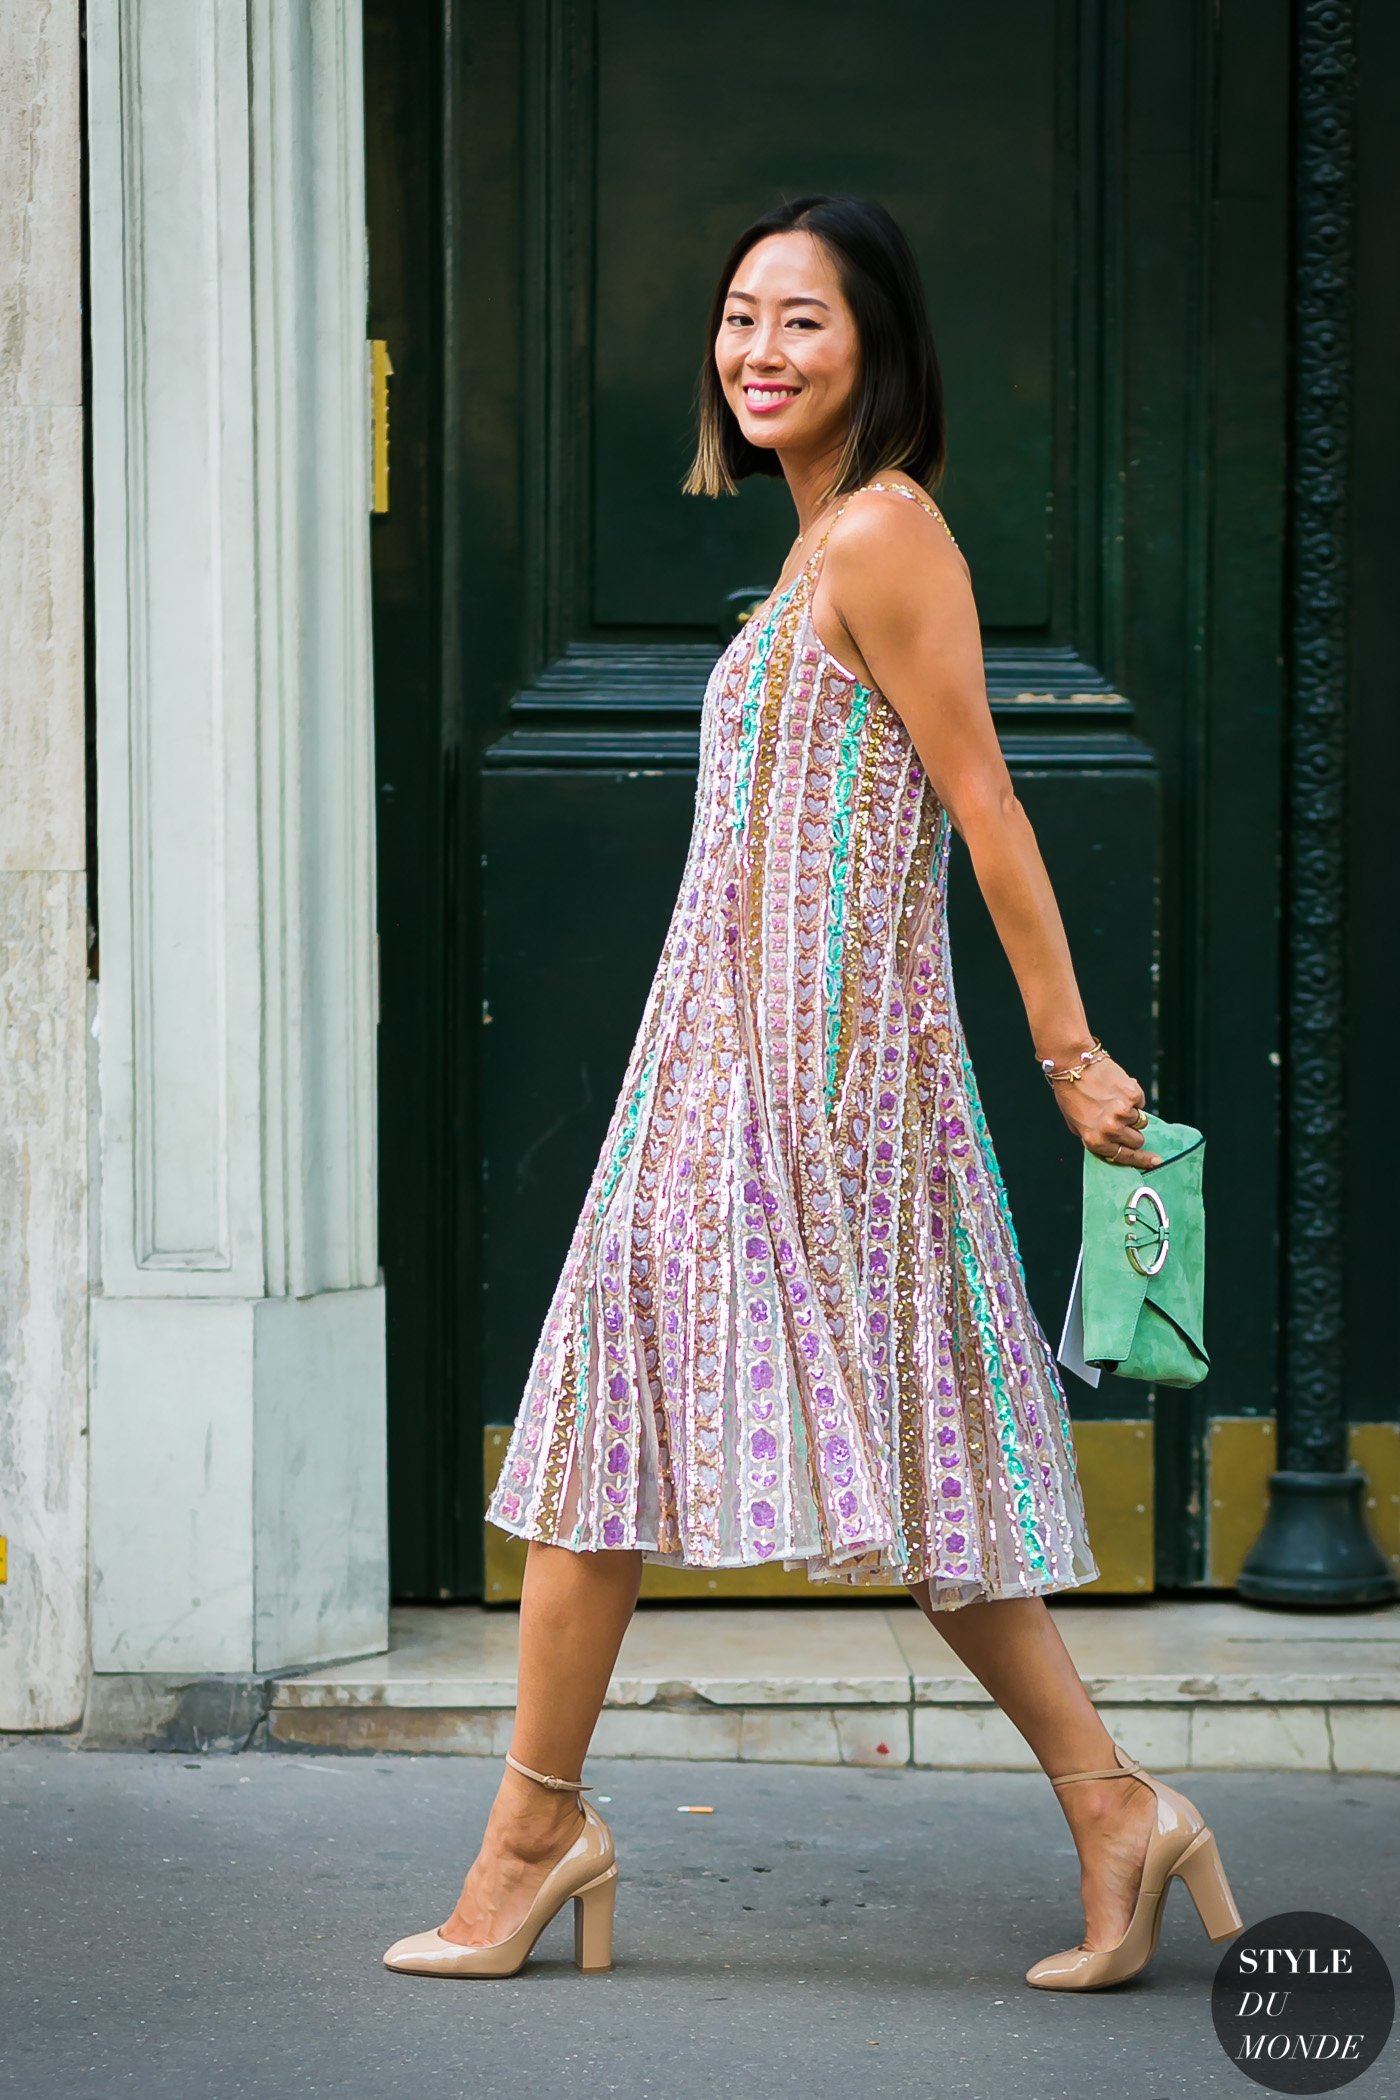 Aimee Song by STYLEDUMONDE Street Style Fashion Photography0E2A0991